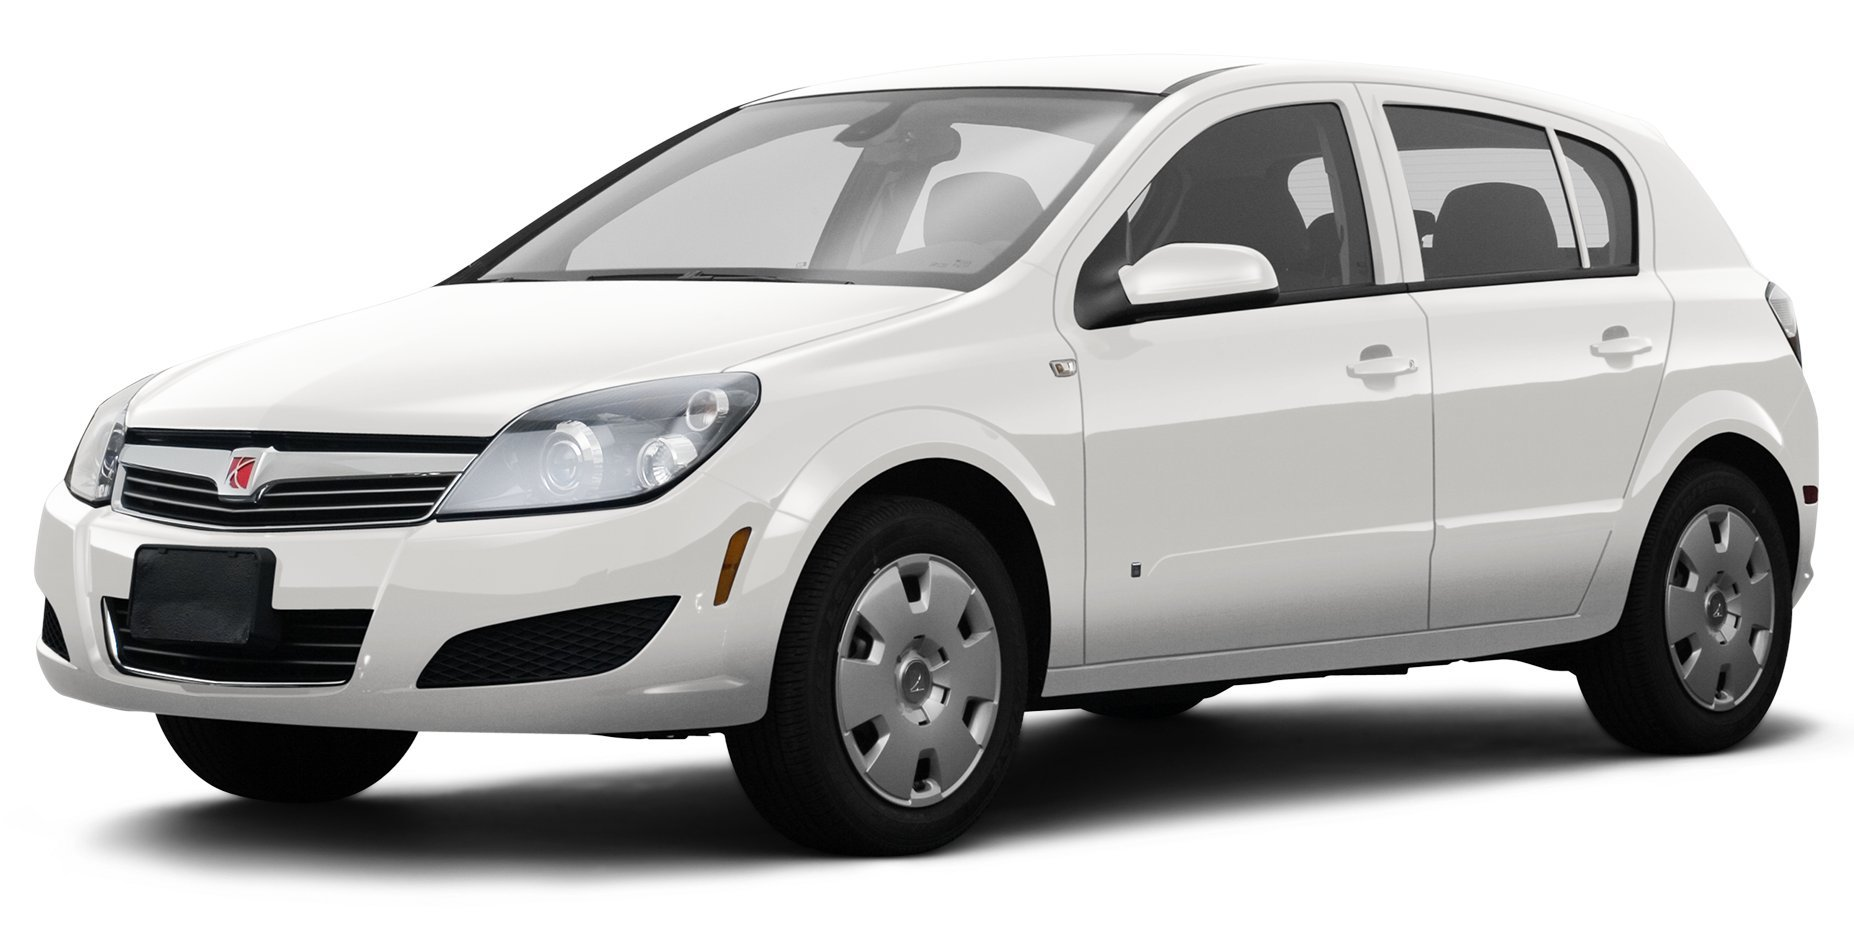 saturn astra engineering diagram amazon com 2008 saturn astra reviews  images  and specs vehicles  amazon com 2008 saturn astra reviews